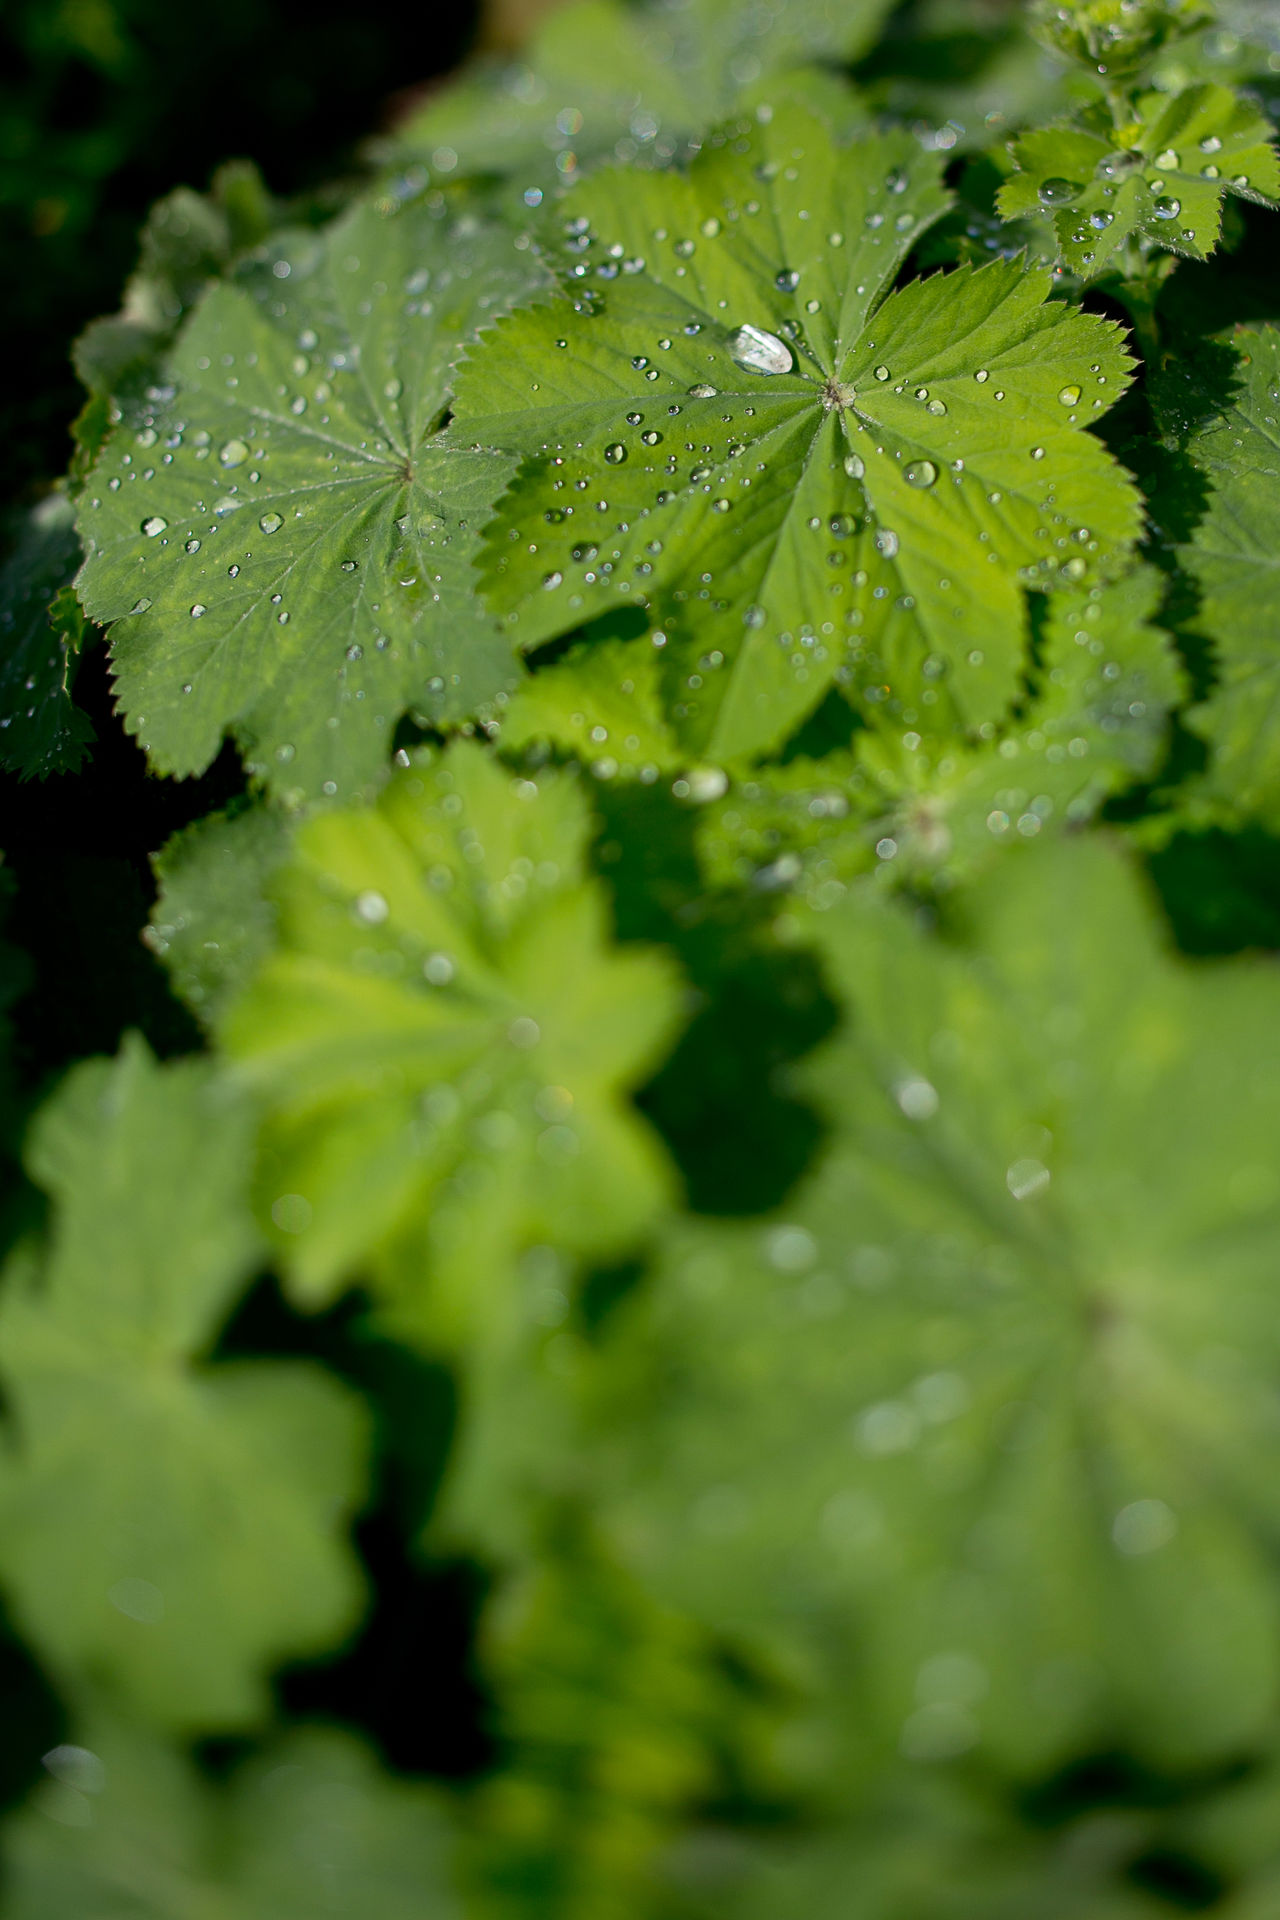 Beauty In Nature Close-up Day Drop Fragility Freshness Full Frame Green Color Growth Leaf Nature No People Outdoors Purity Water Wet